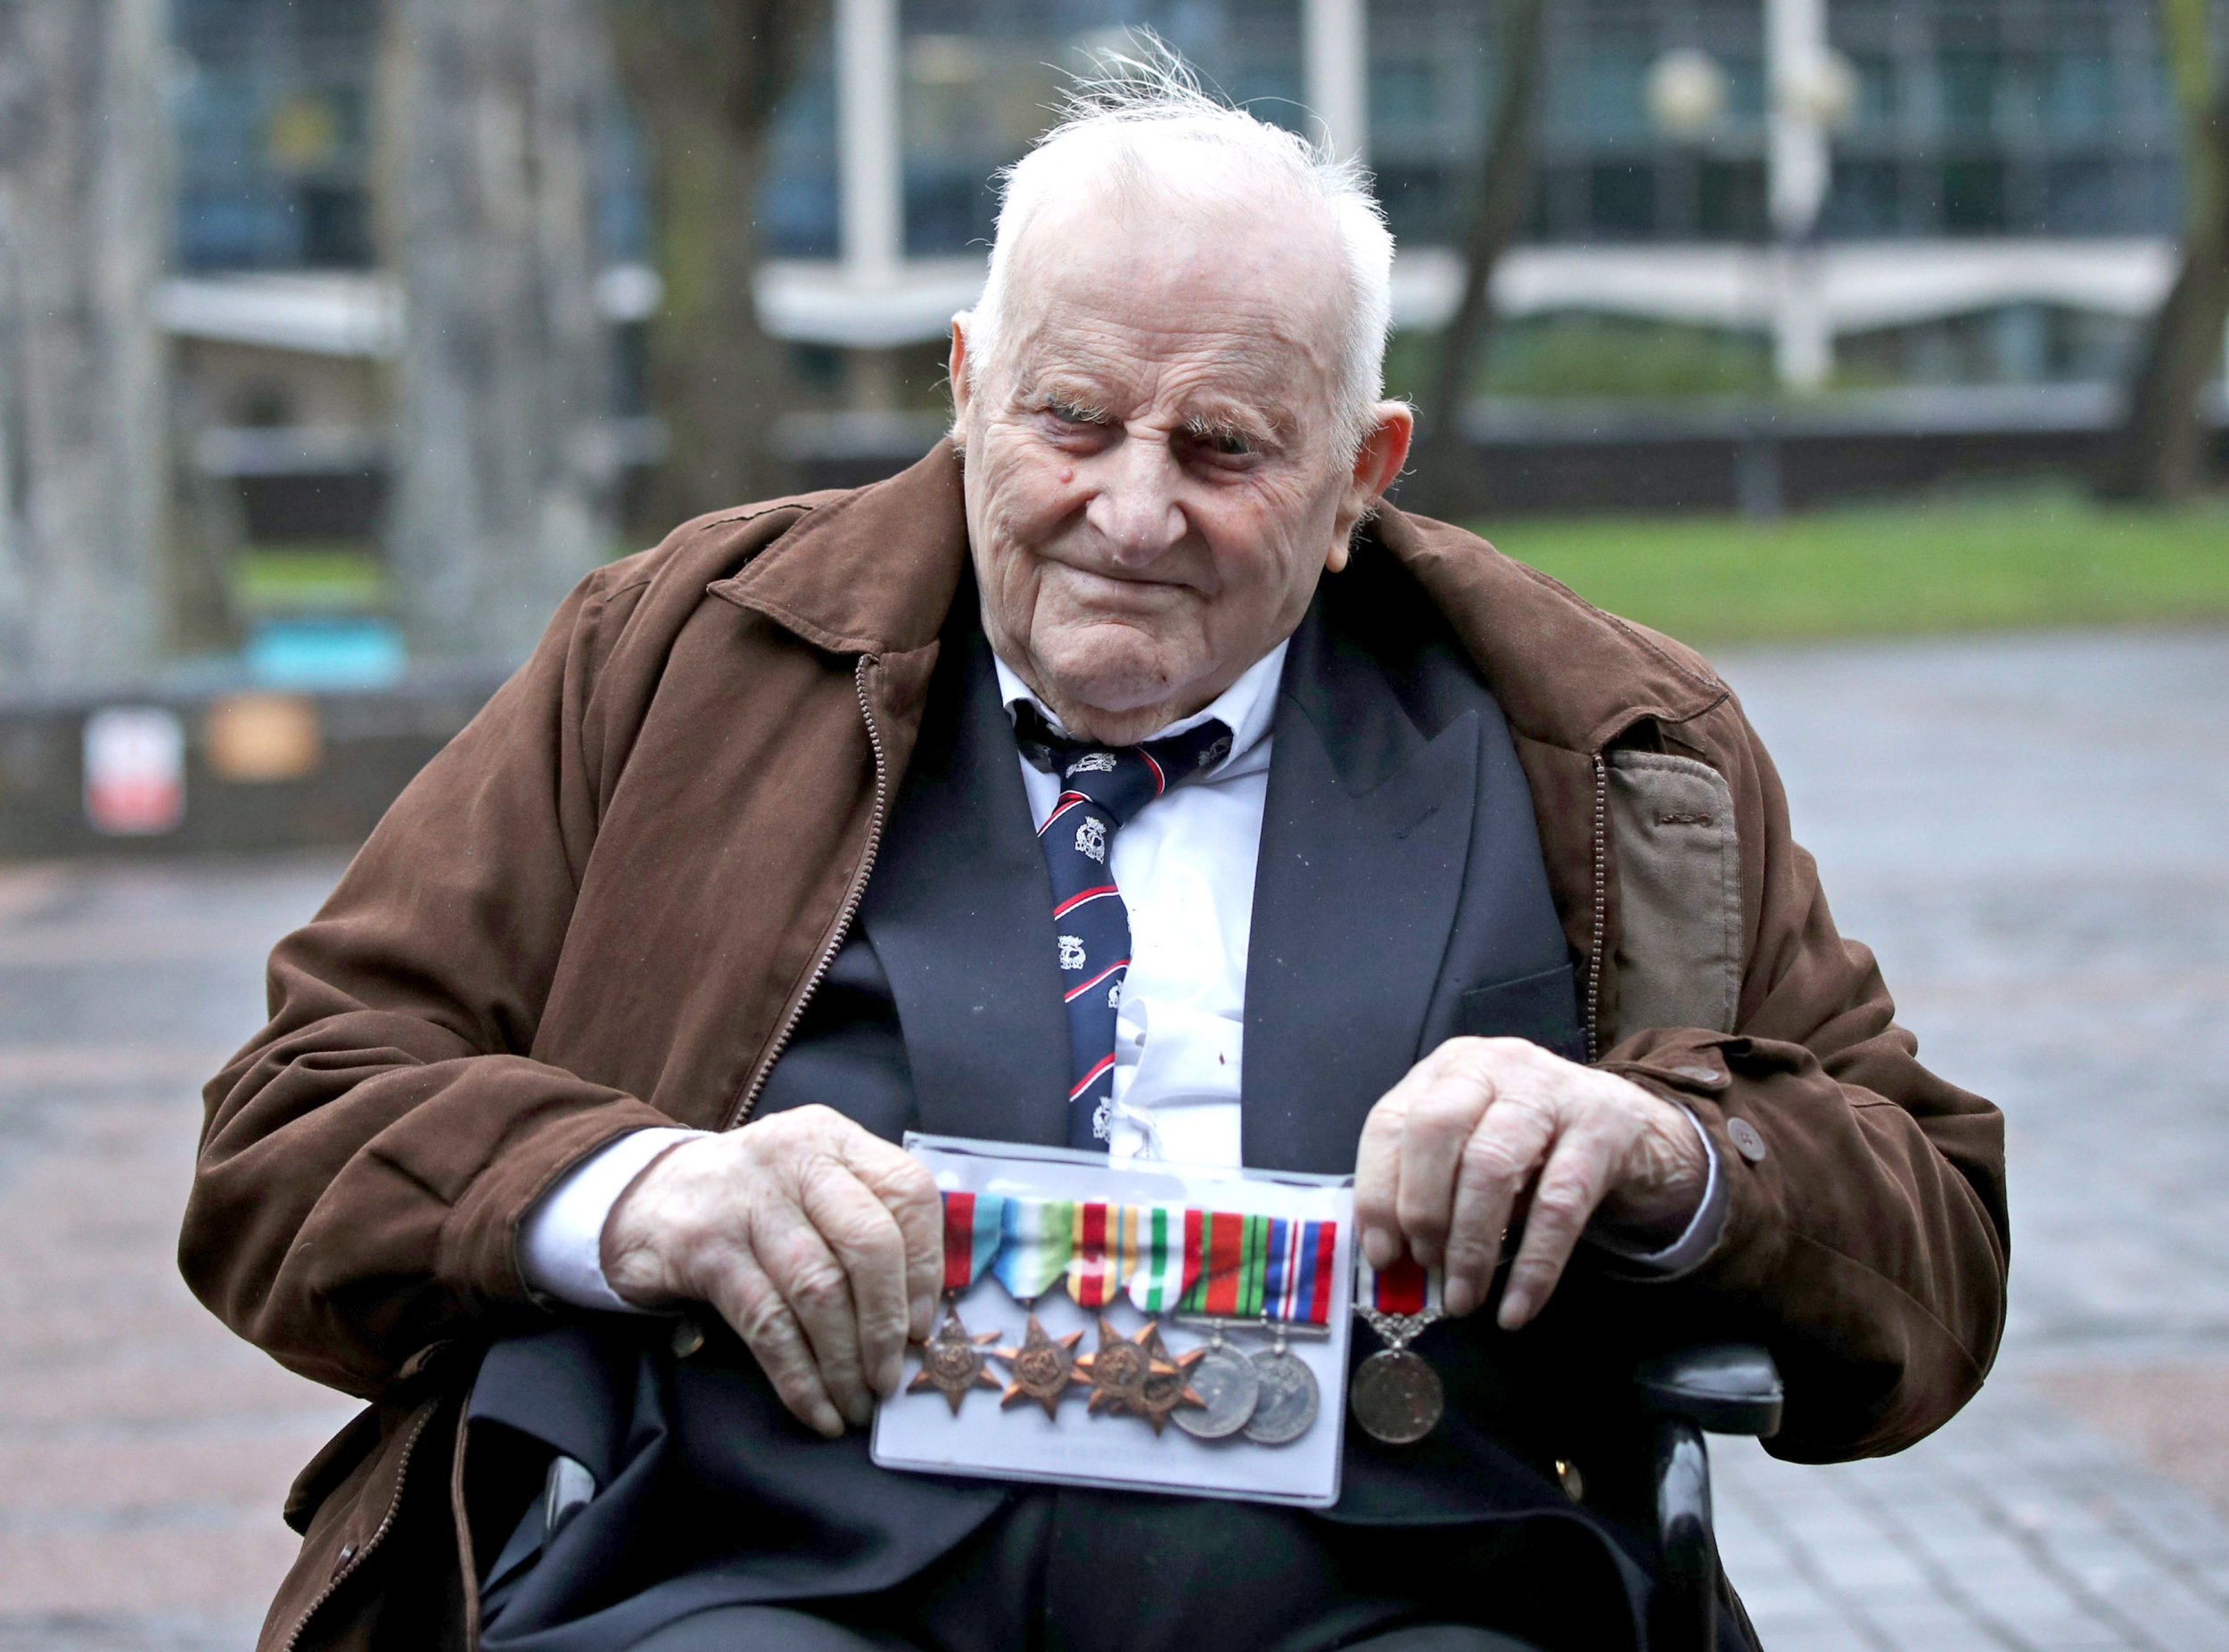 Douglas Meyers, a blind 97-year-old Second World War veteran who is battling to persuade a High Court judge to let him leave a care facility and end his life at home, leaves the court house in Southend after a hearing. PRESS ASSOCIATION Photo. Picture date: Monday February 4, 2019. The former Royal Navy gunner, who served in the Italian and north African theatres during the 1940s, arrived at the hearing in a wheelchair and sat at the front of the court wearing a row of campaign medals. See PA story COURTS Gunner. Photo credit should read: Yui Mok/PA Wire